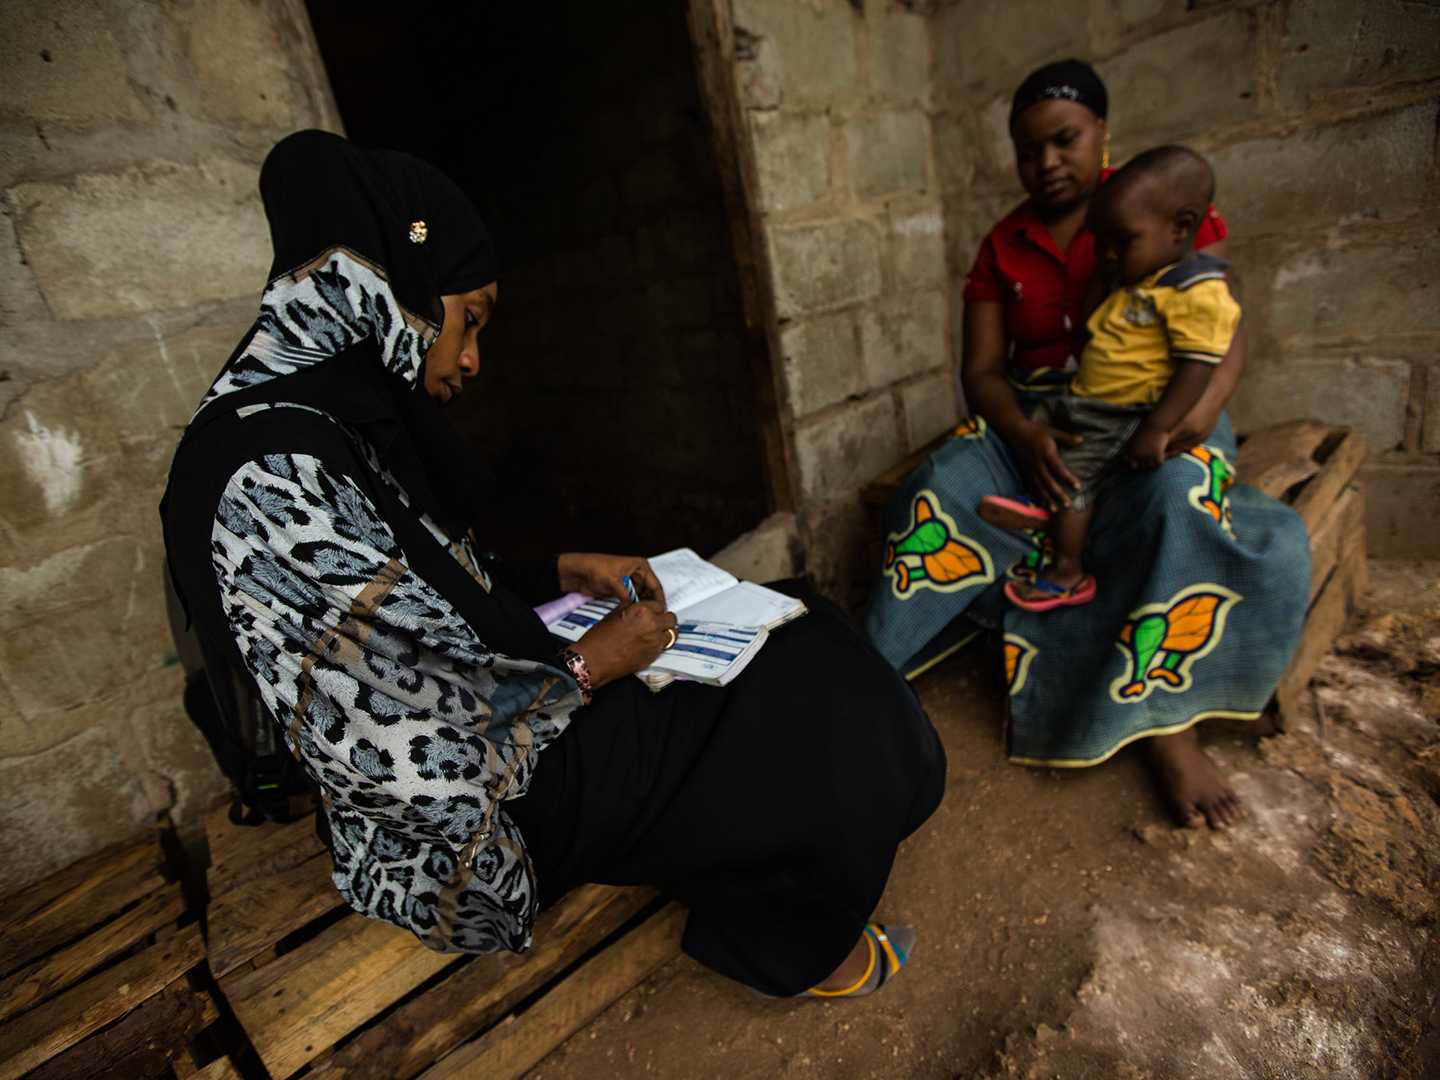 Health worker visits woman and child in Zanzibar (USAID)